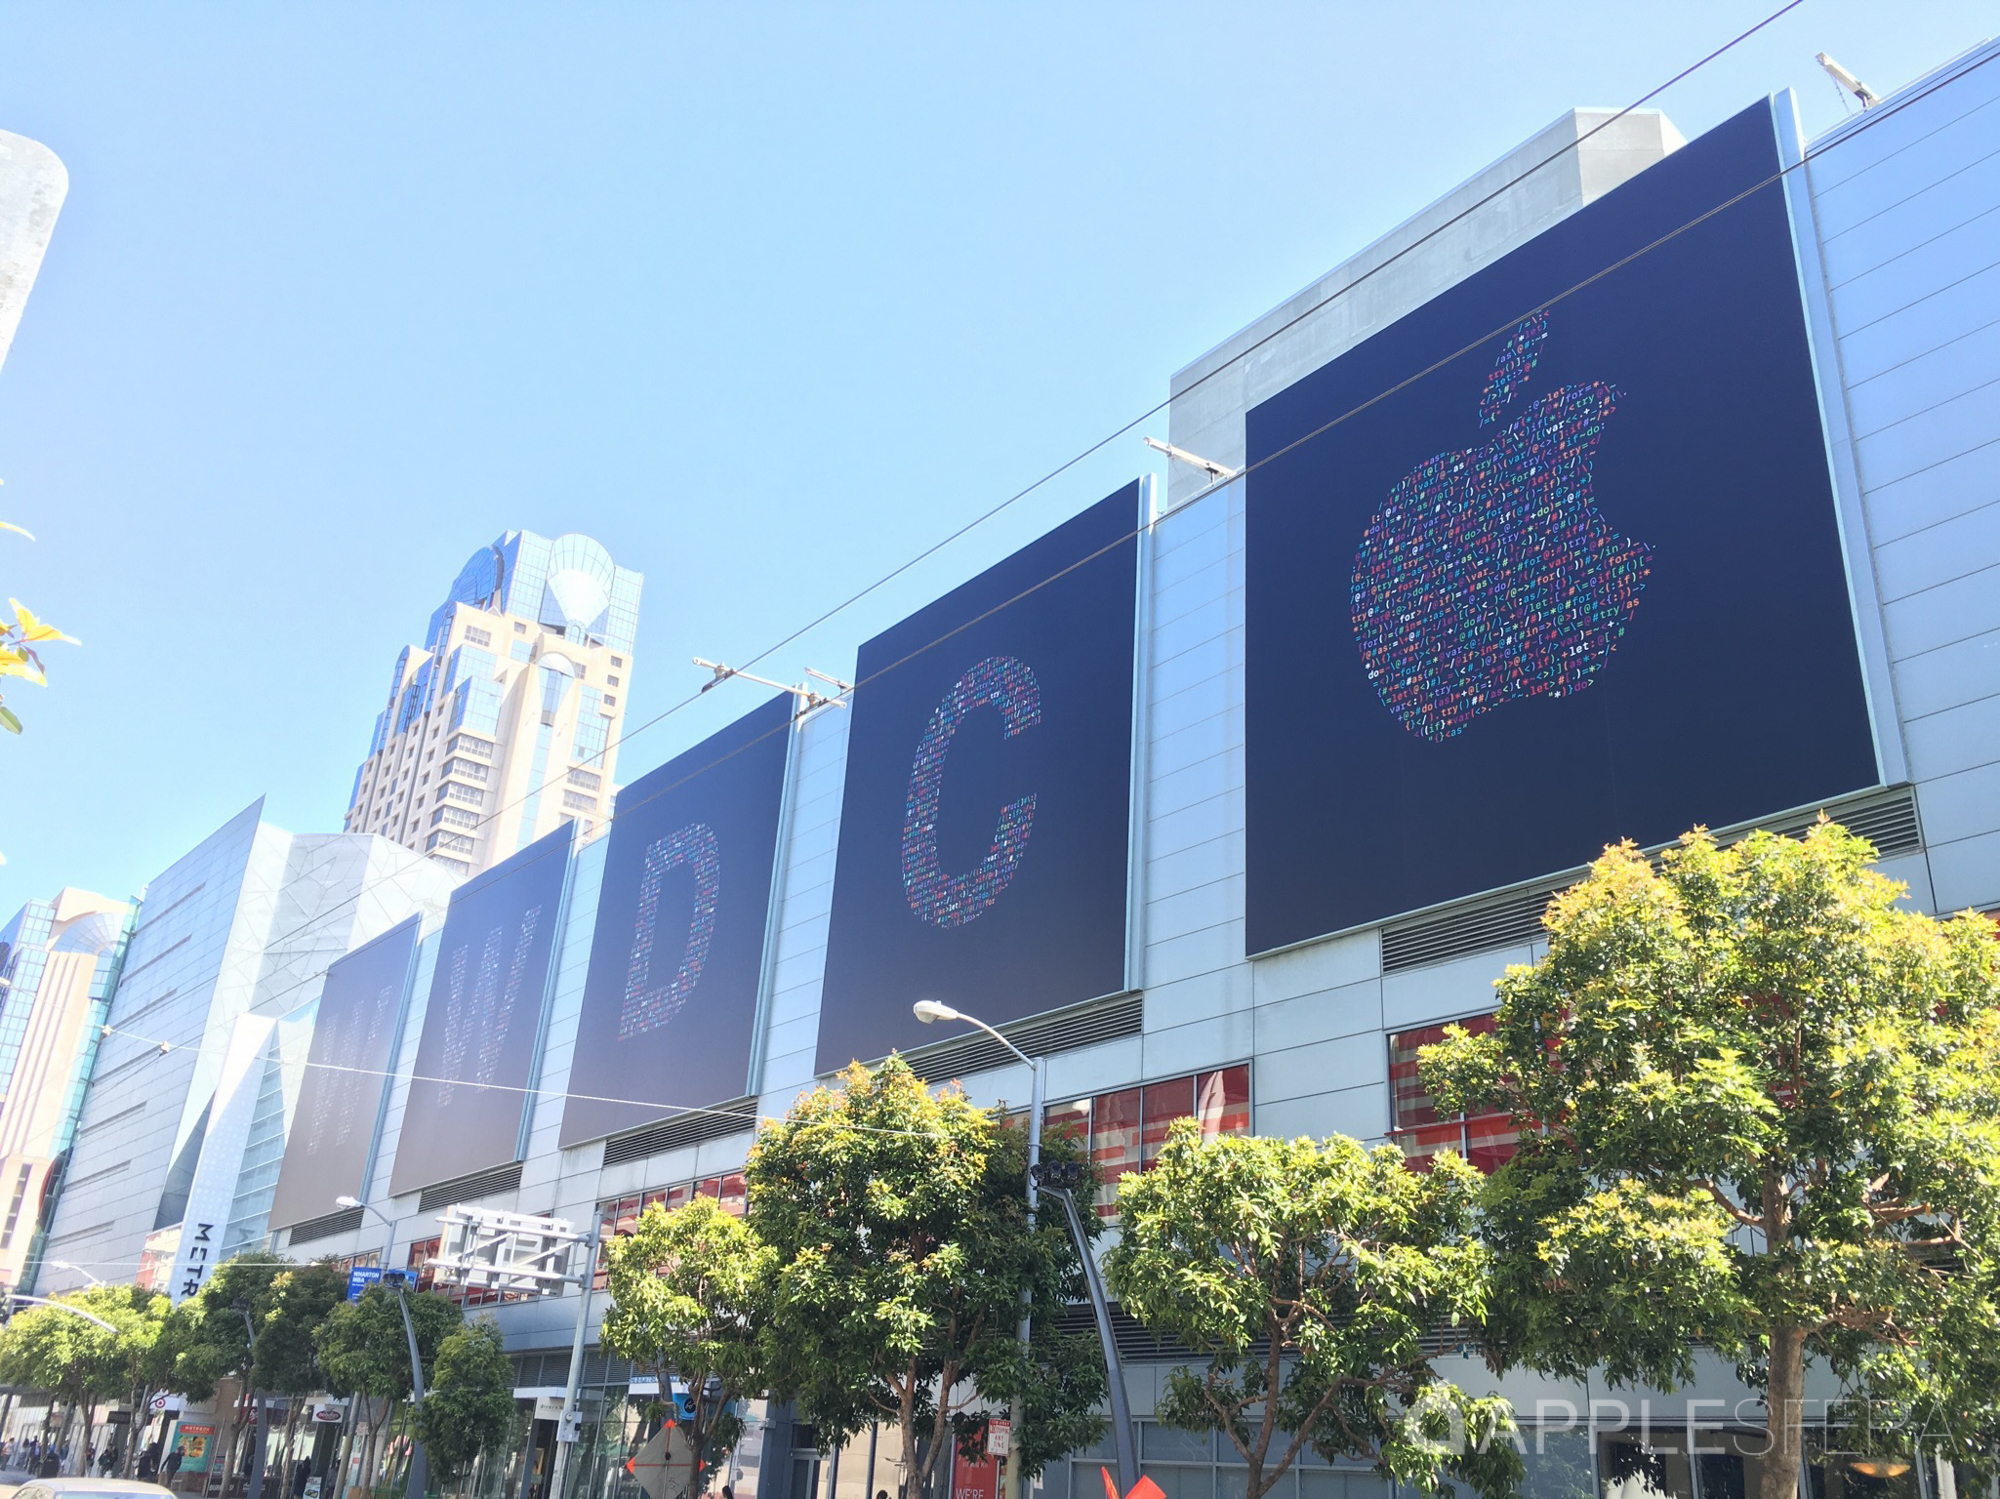 Apple Store Union Square & WWDC16 Moscone Center